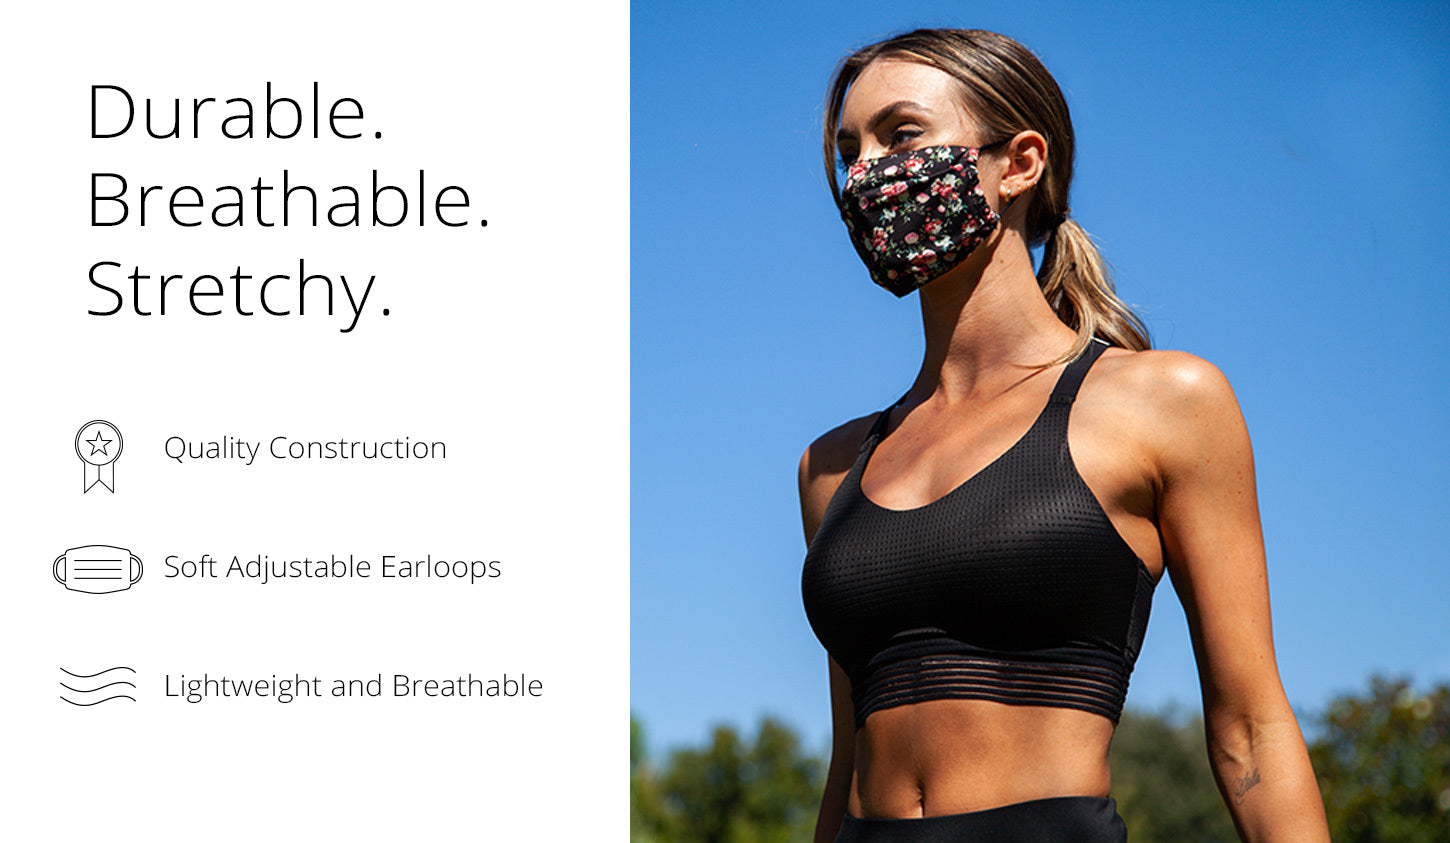 Durable Breathable Stretchy